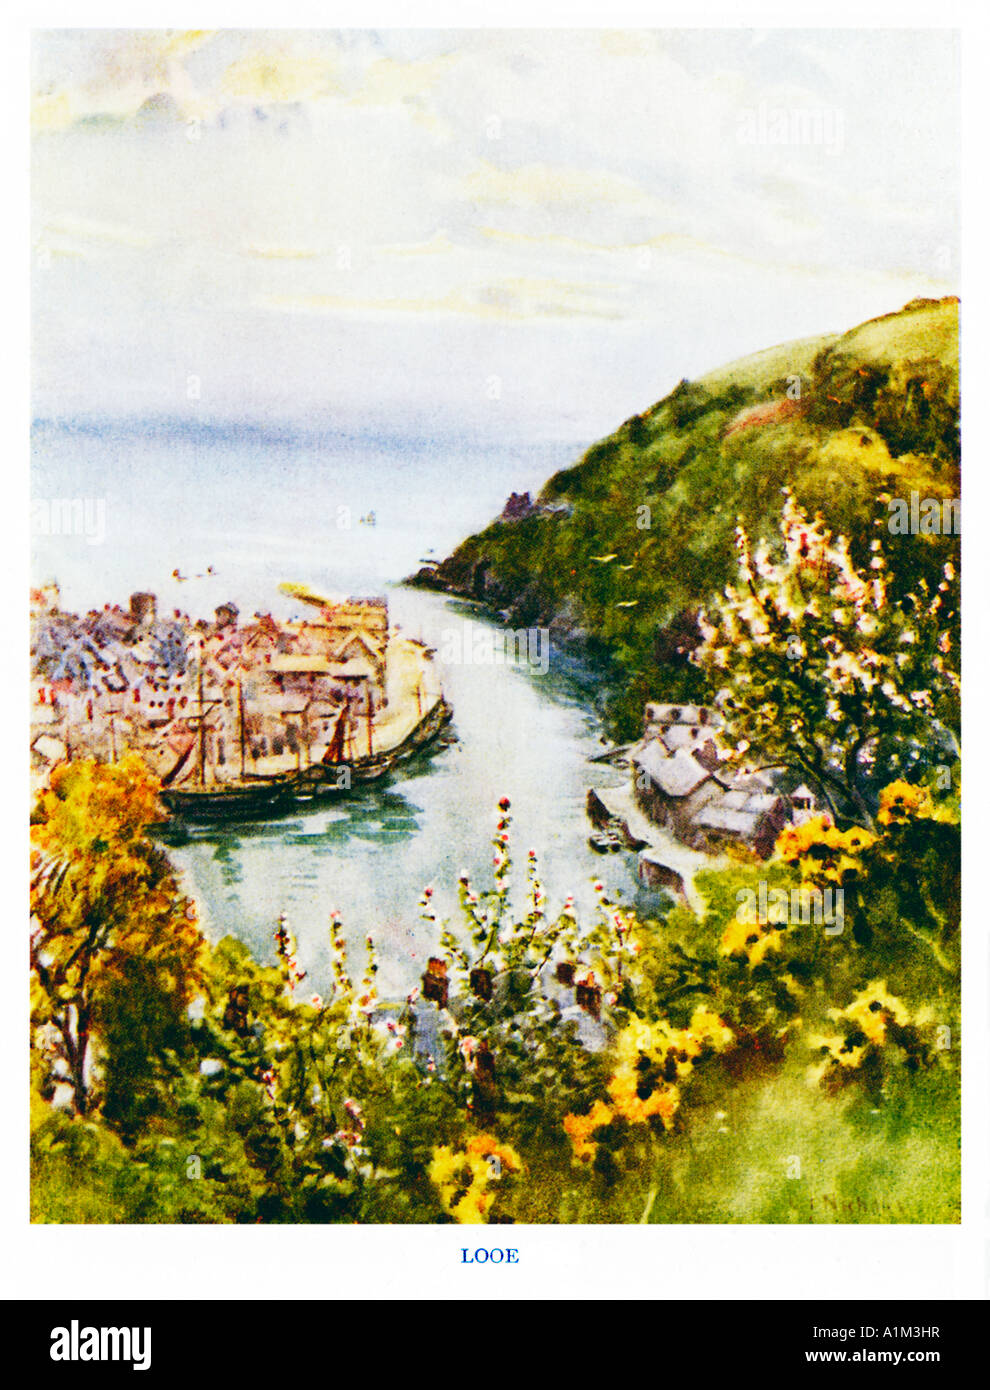 Looe Edwardian watercolour of the South Cornish estuary and port - Stock Image